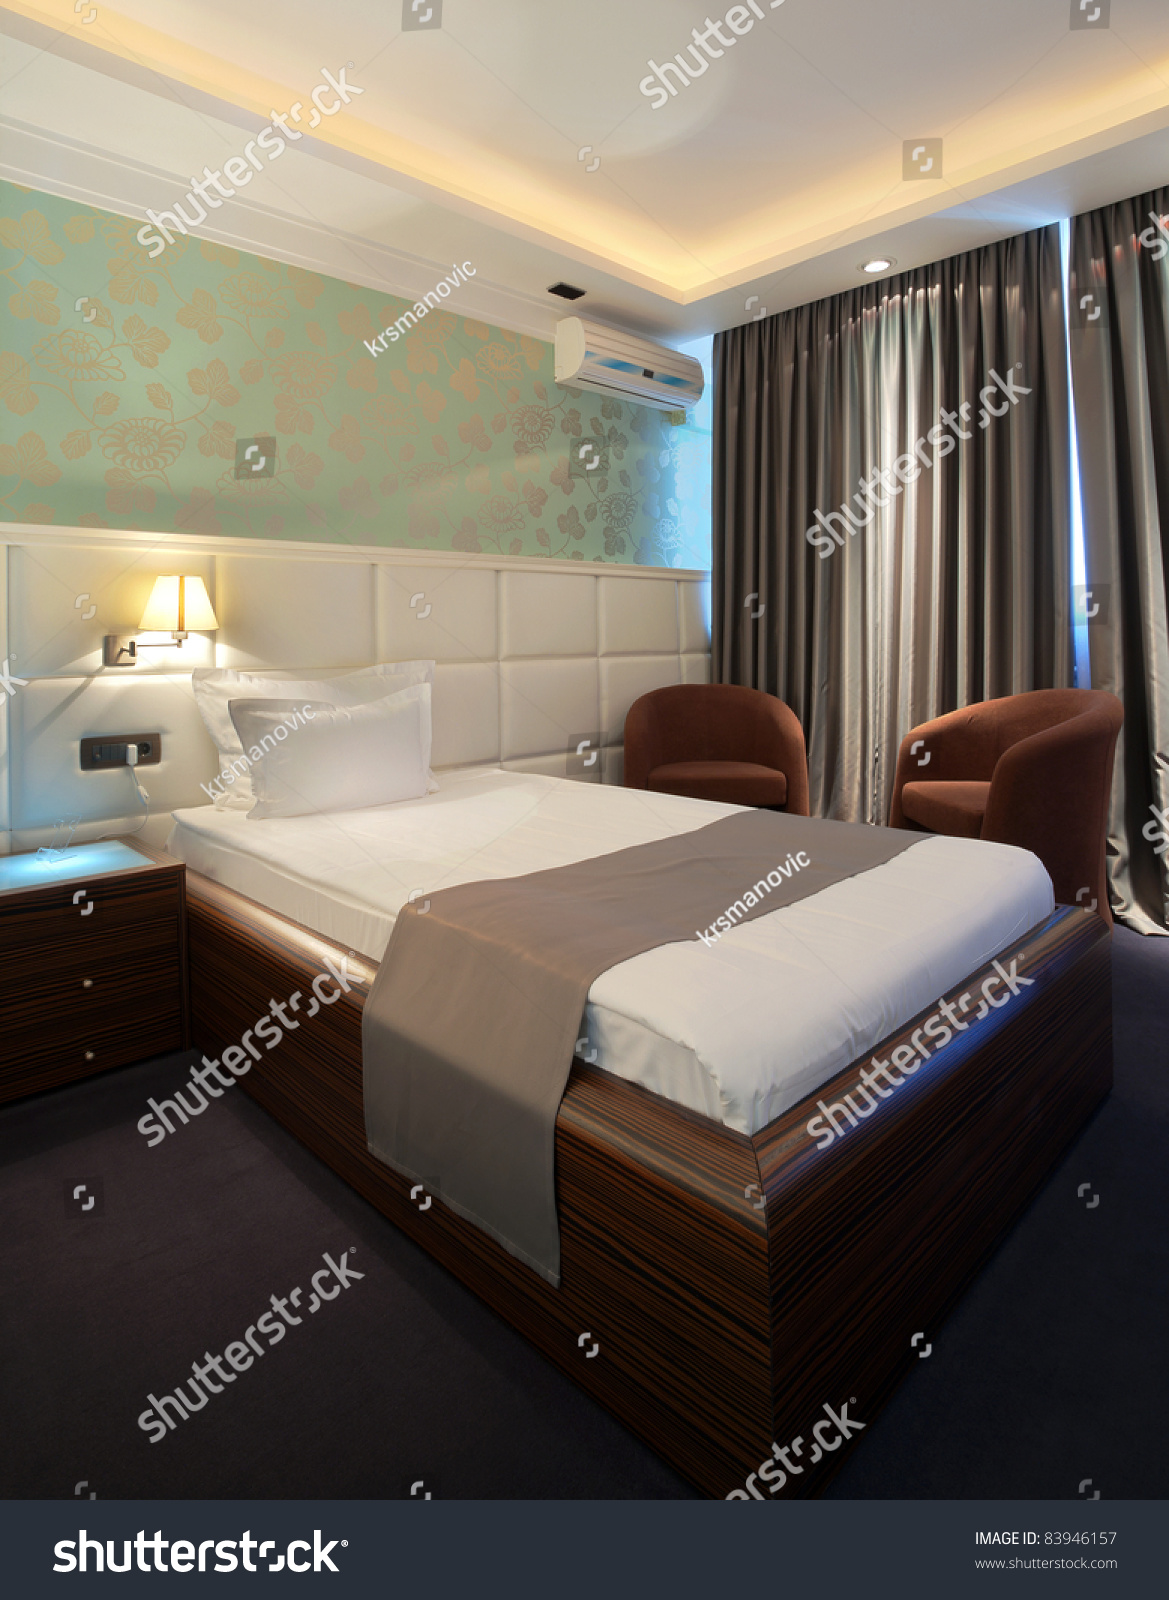 Hotel Room Design: Interior Of A Hotel Room With Furniture, Modern